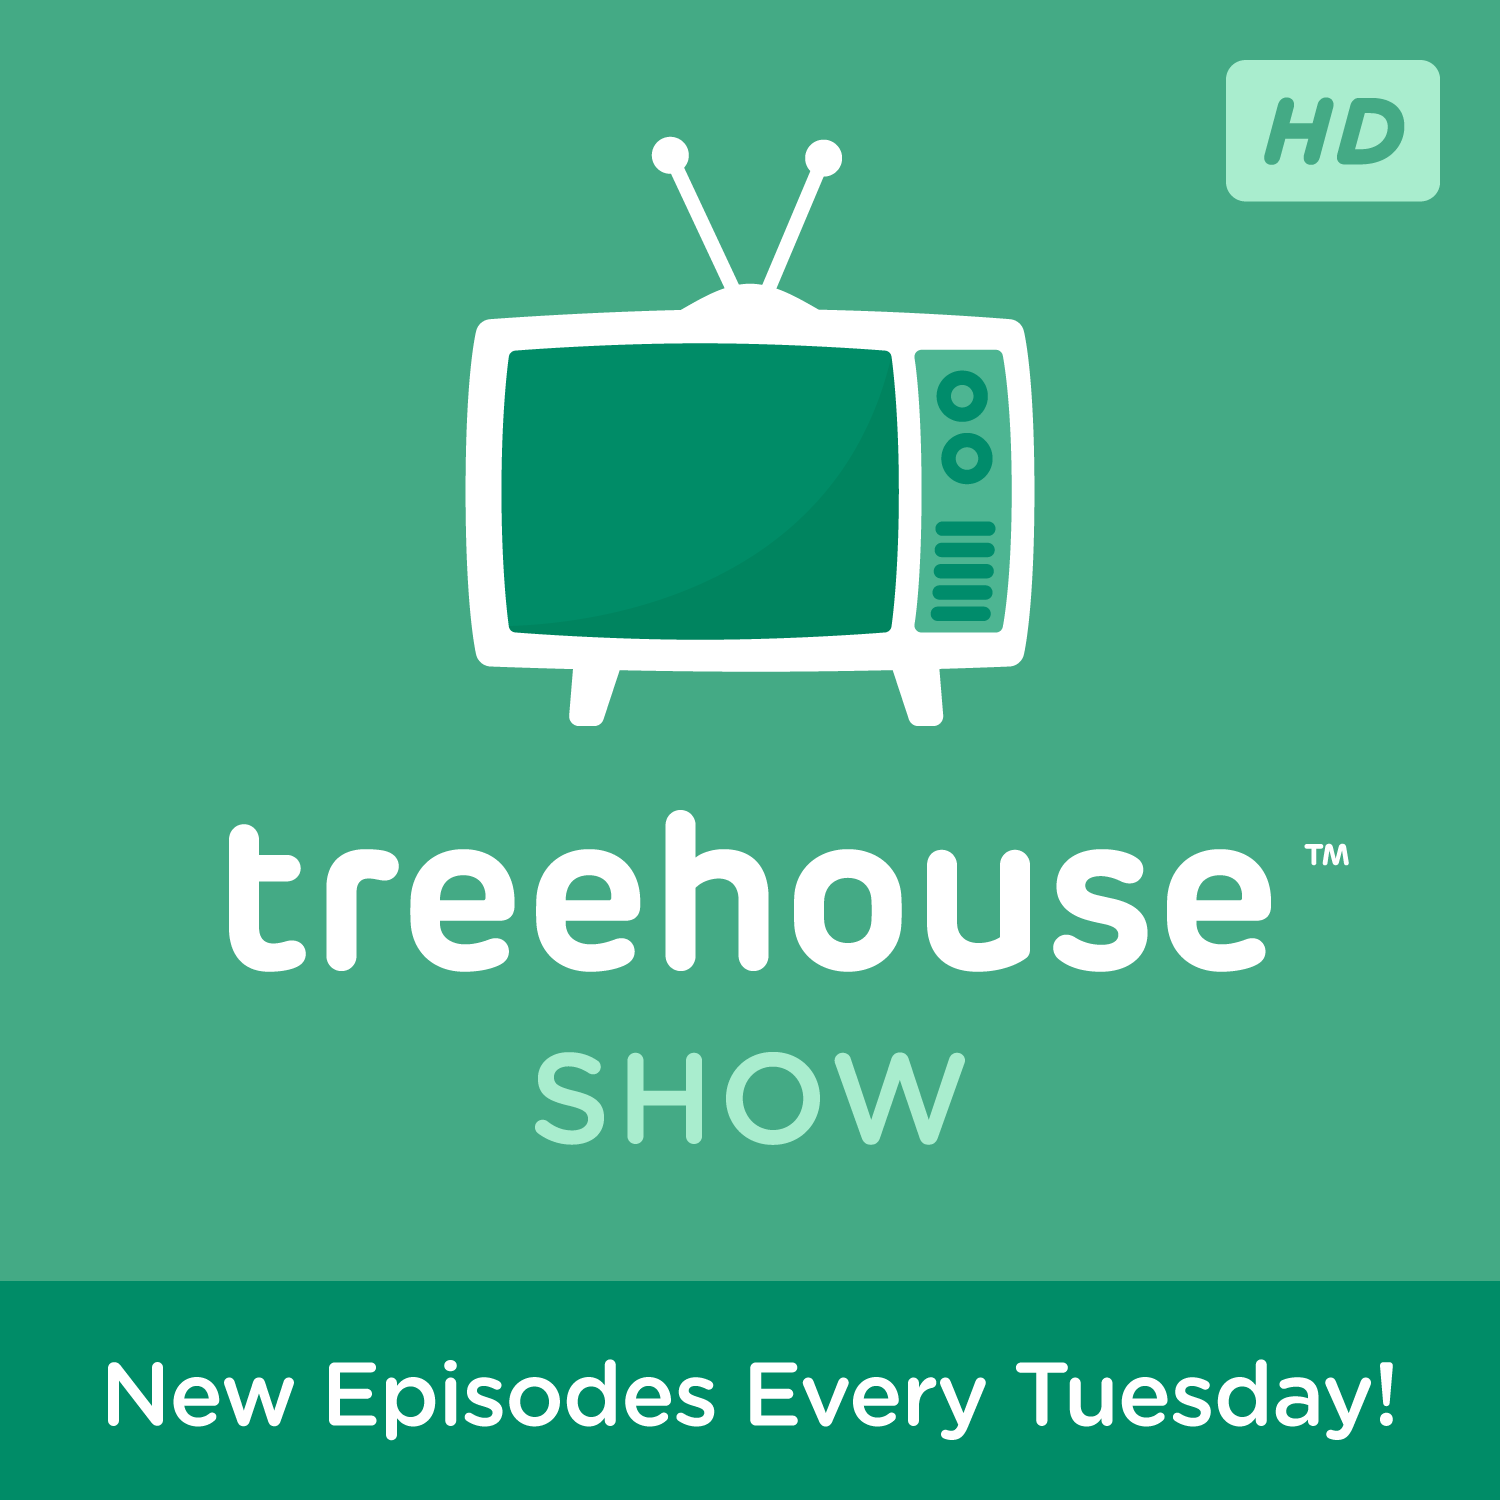 The Treehouse Show (HD)